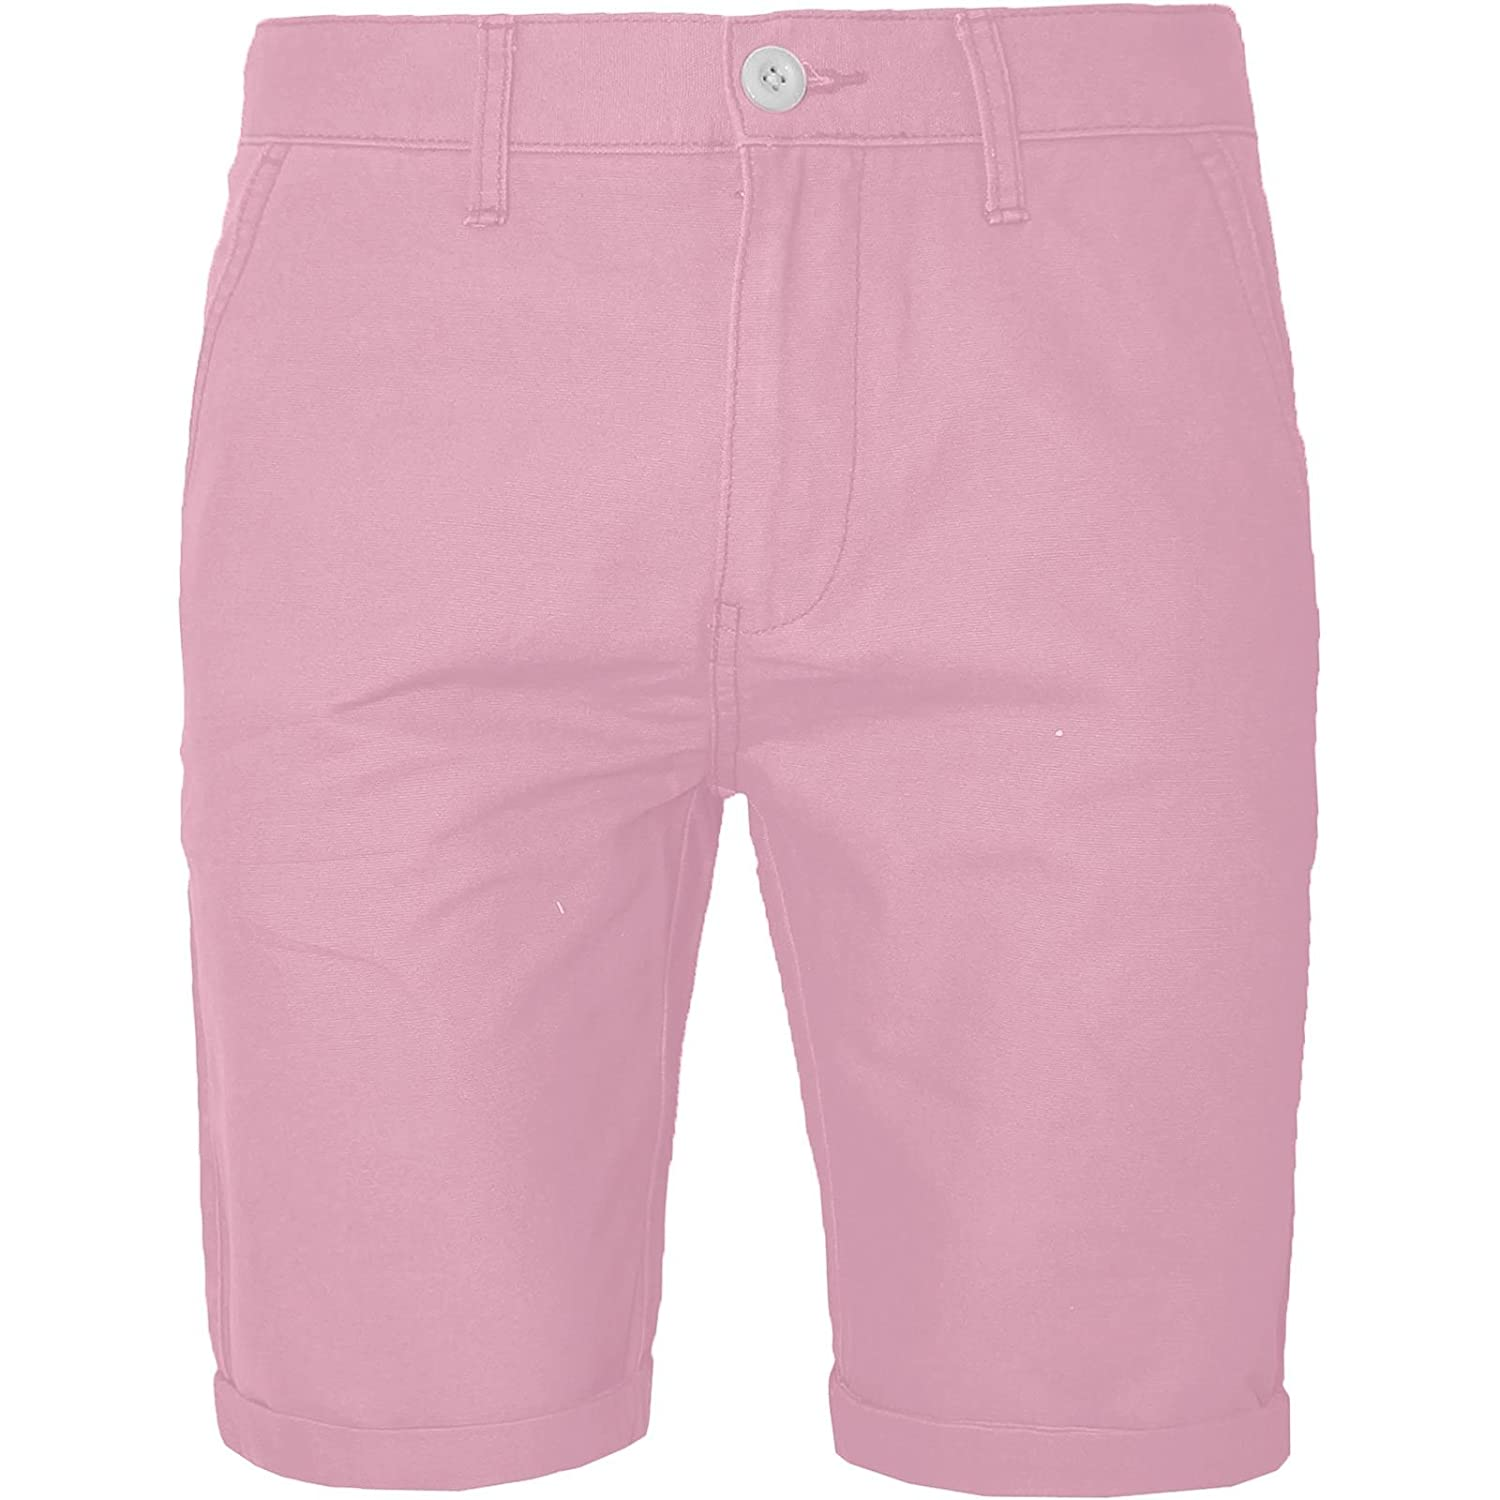 AFS - Short - Homme